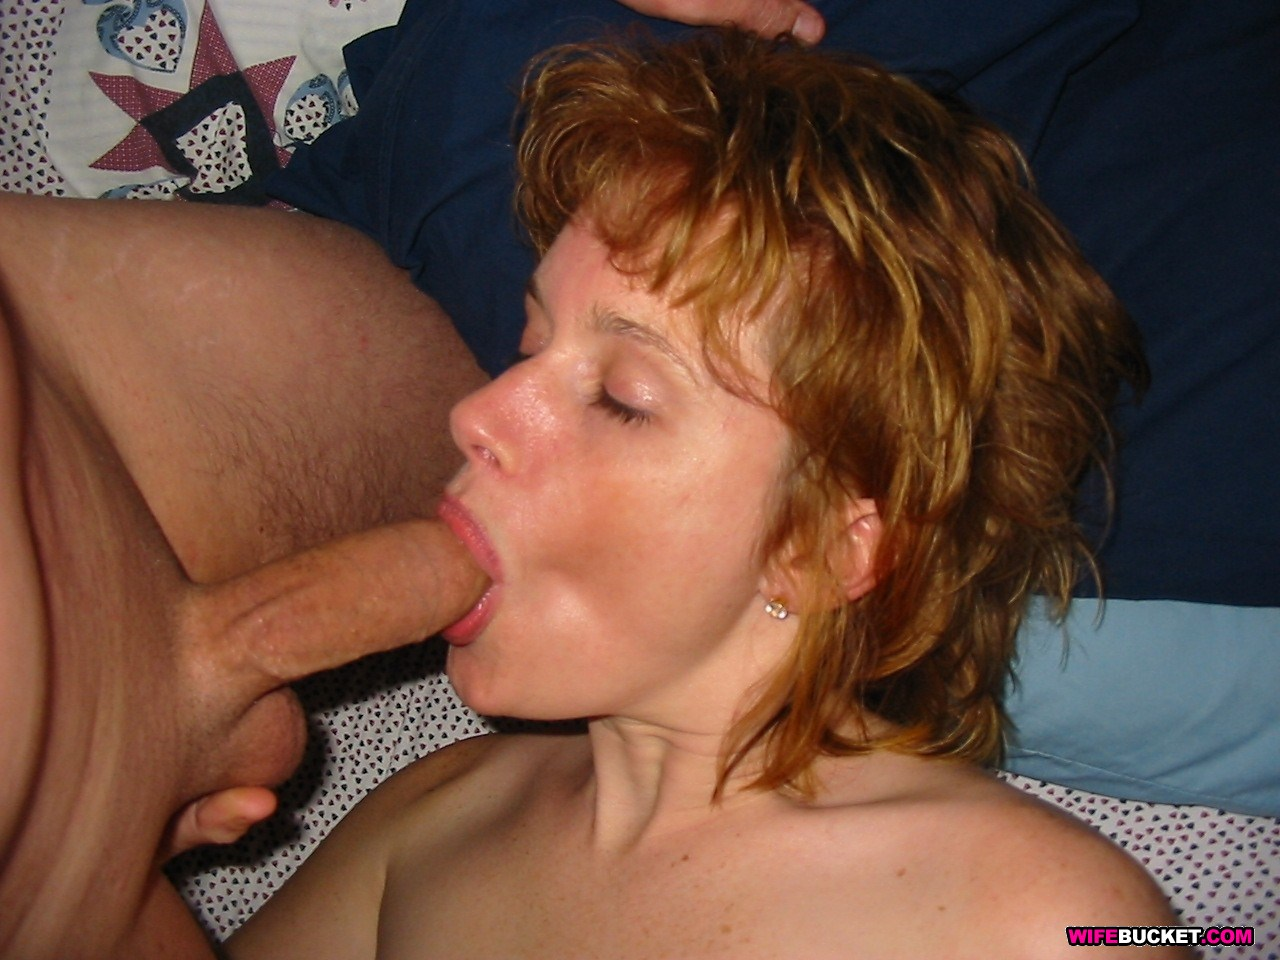 Free young anal photos